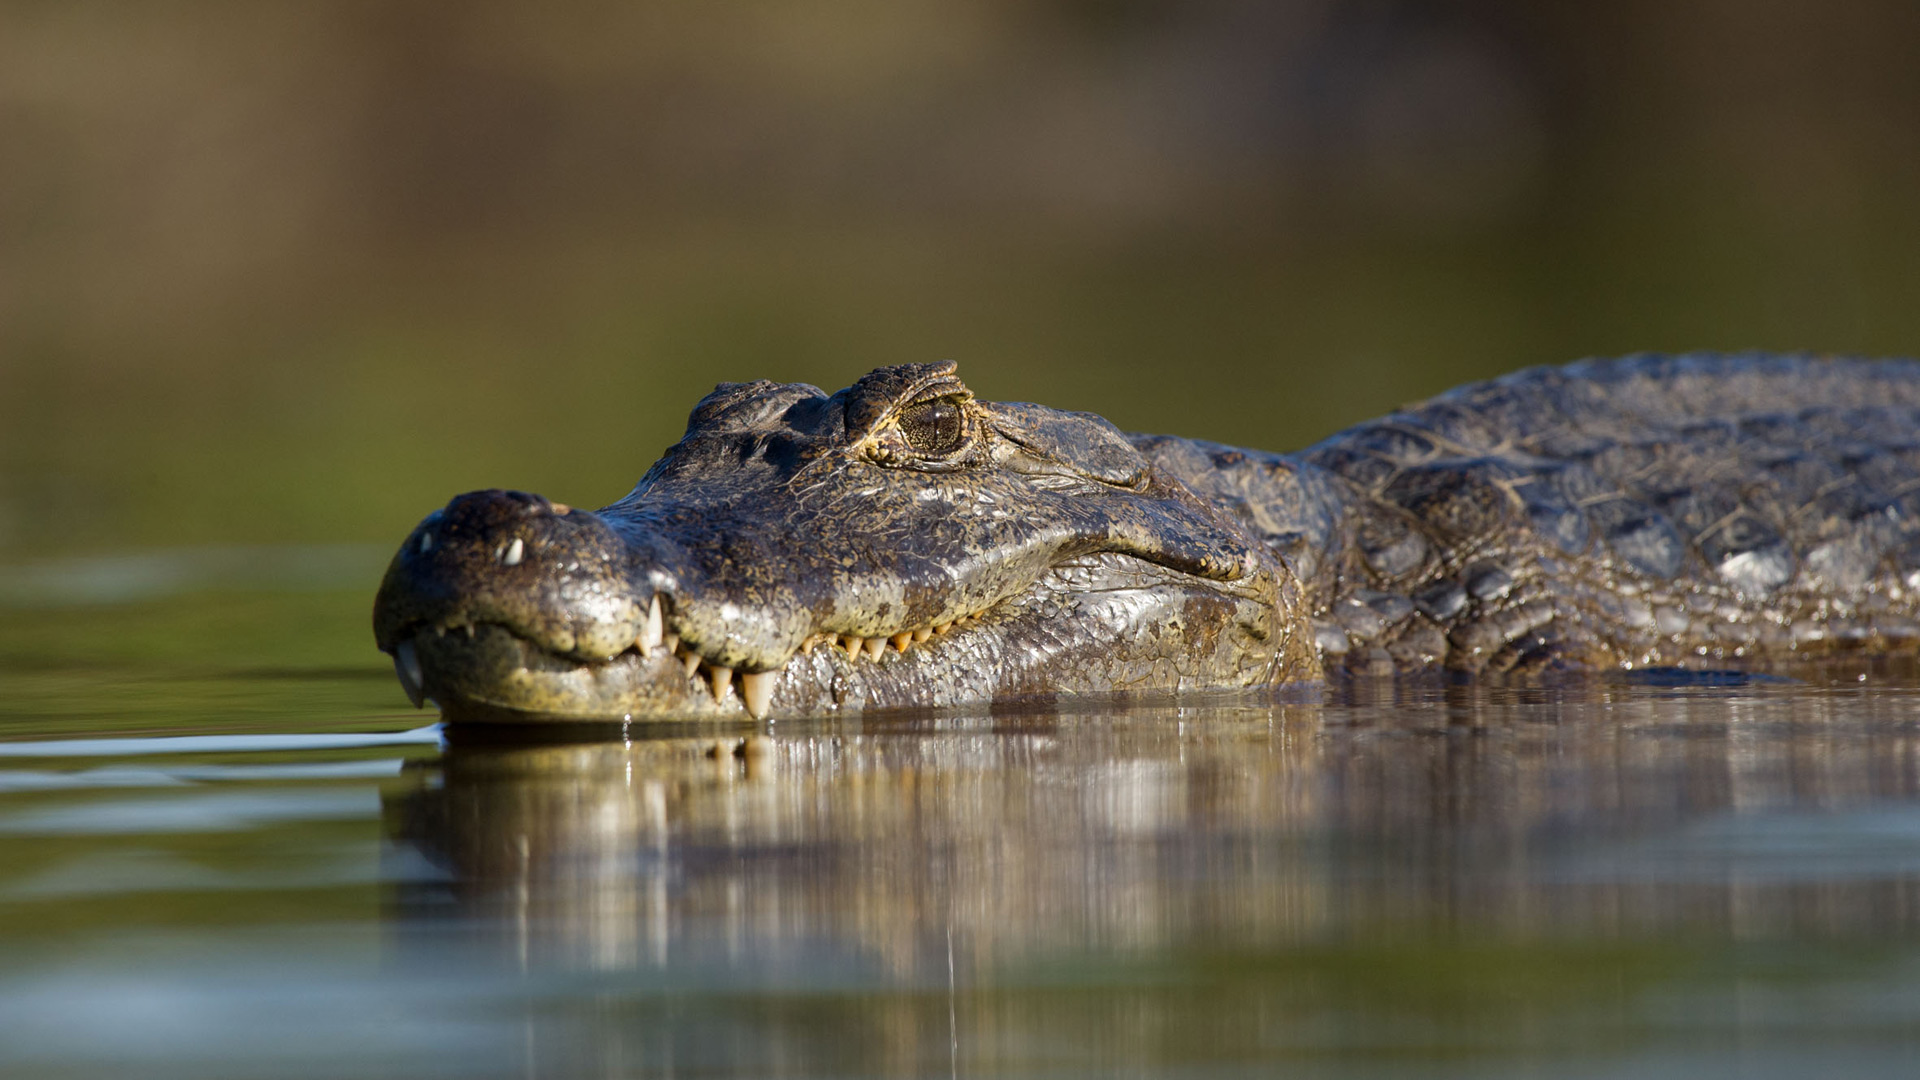 Caiman in the Brazilian Pantanal, Paul Joynson-Hicks